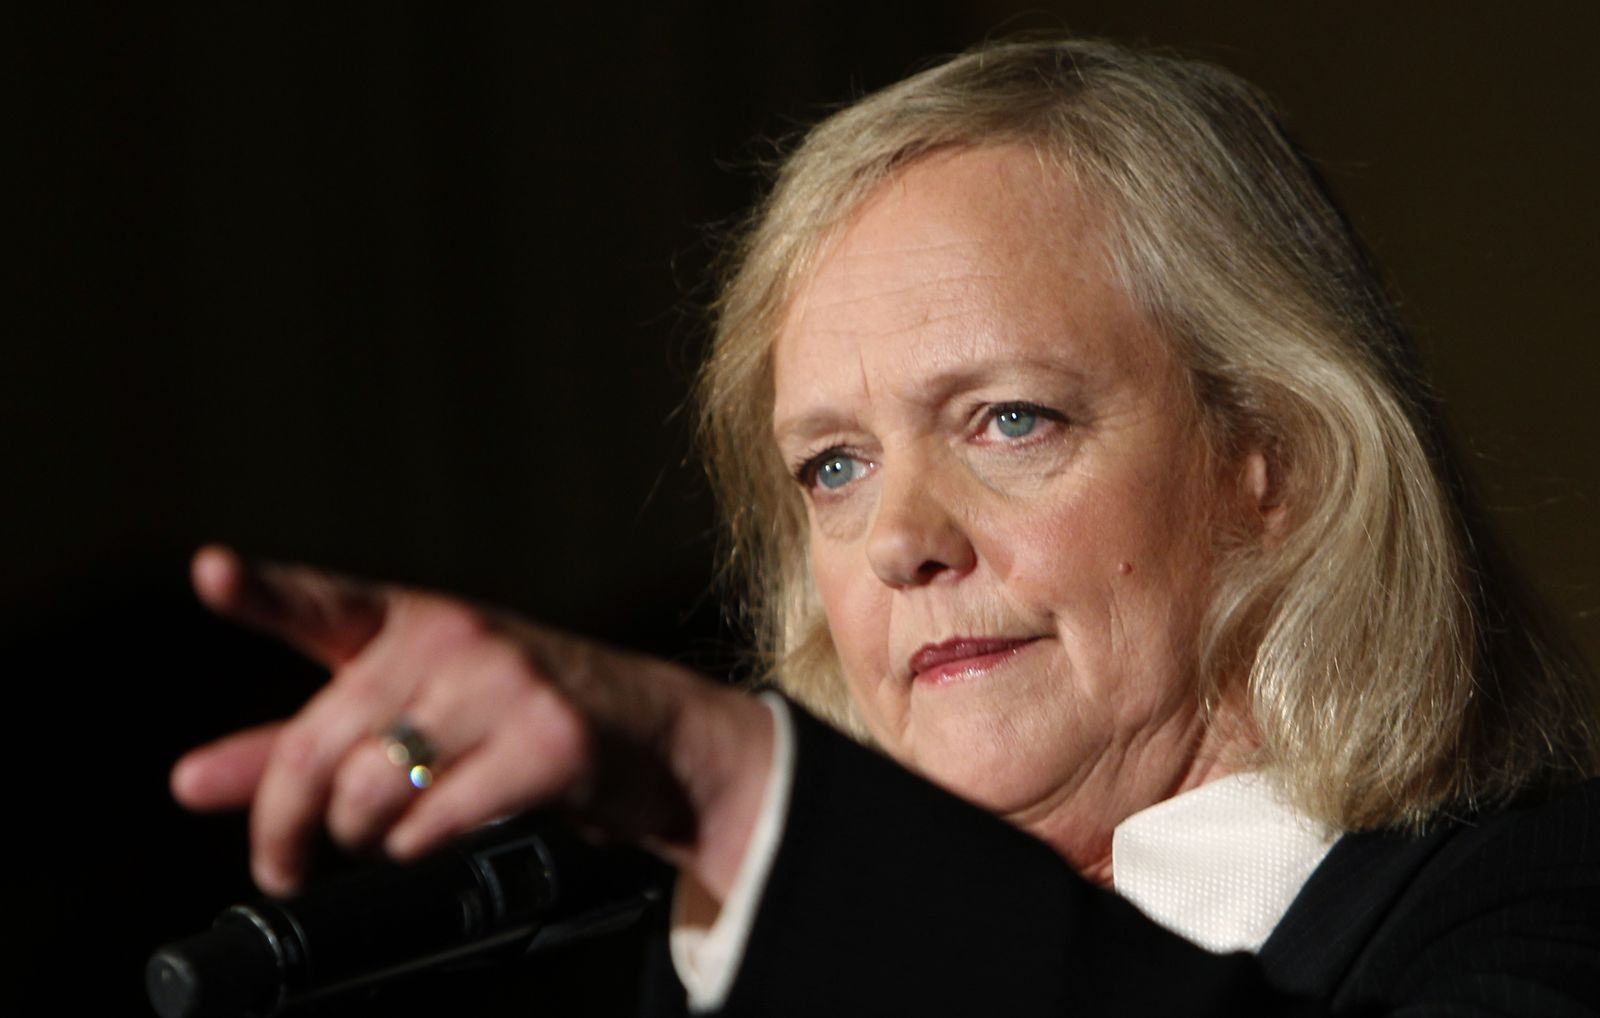 Meg Whitman / HP CEO